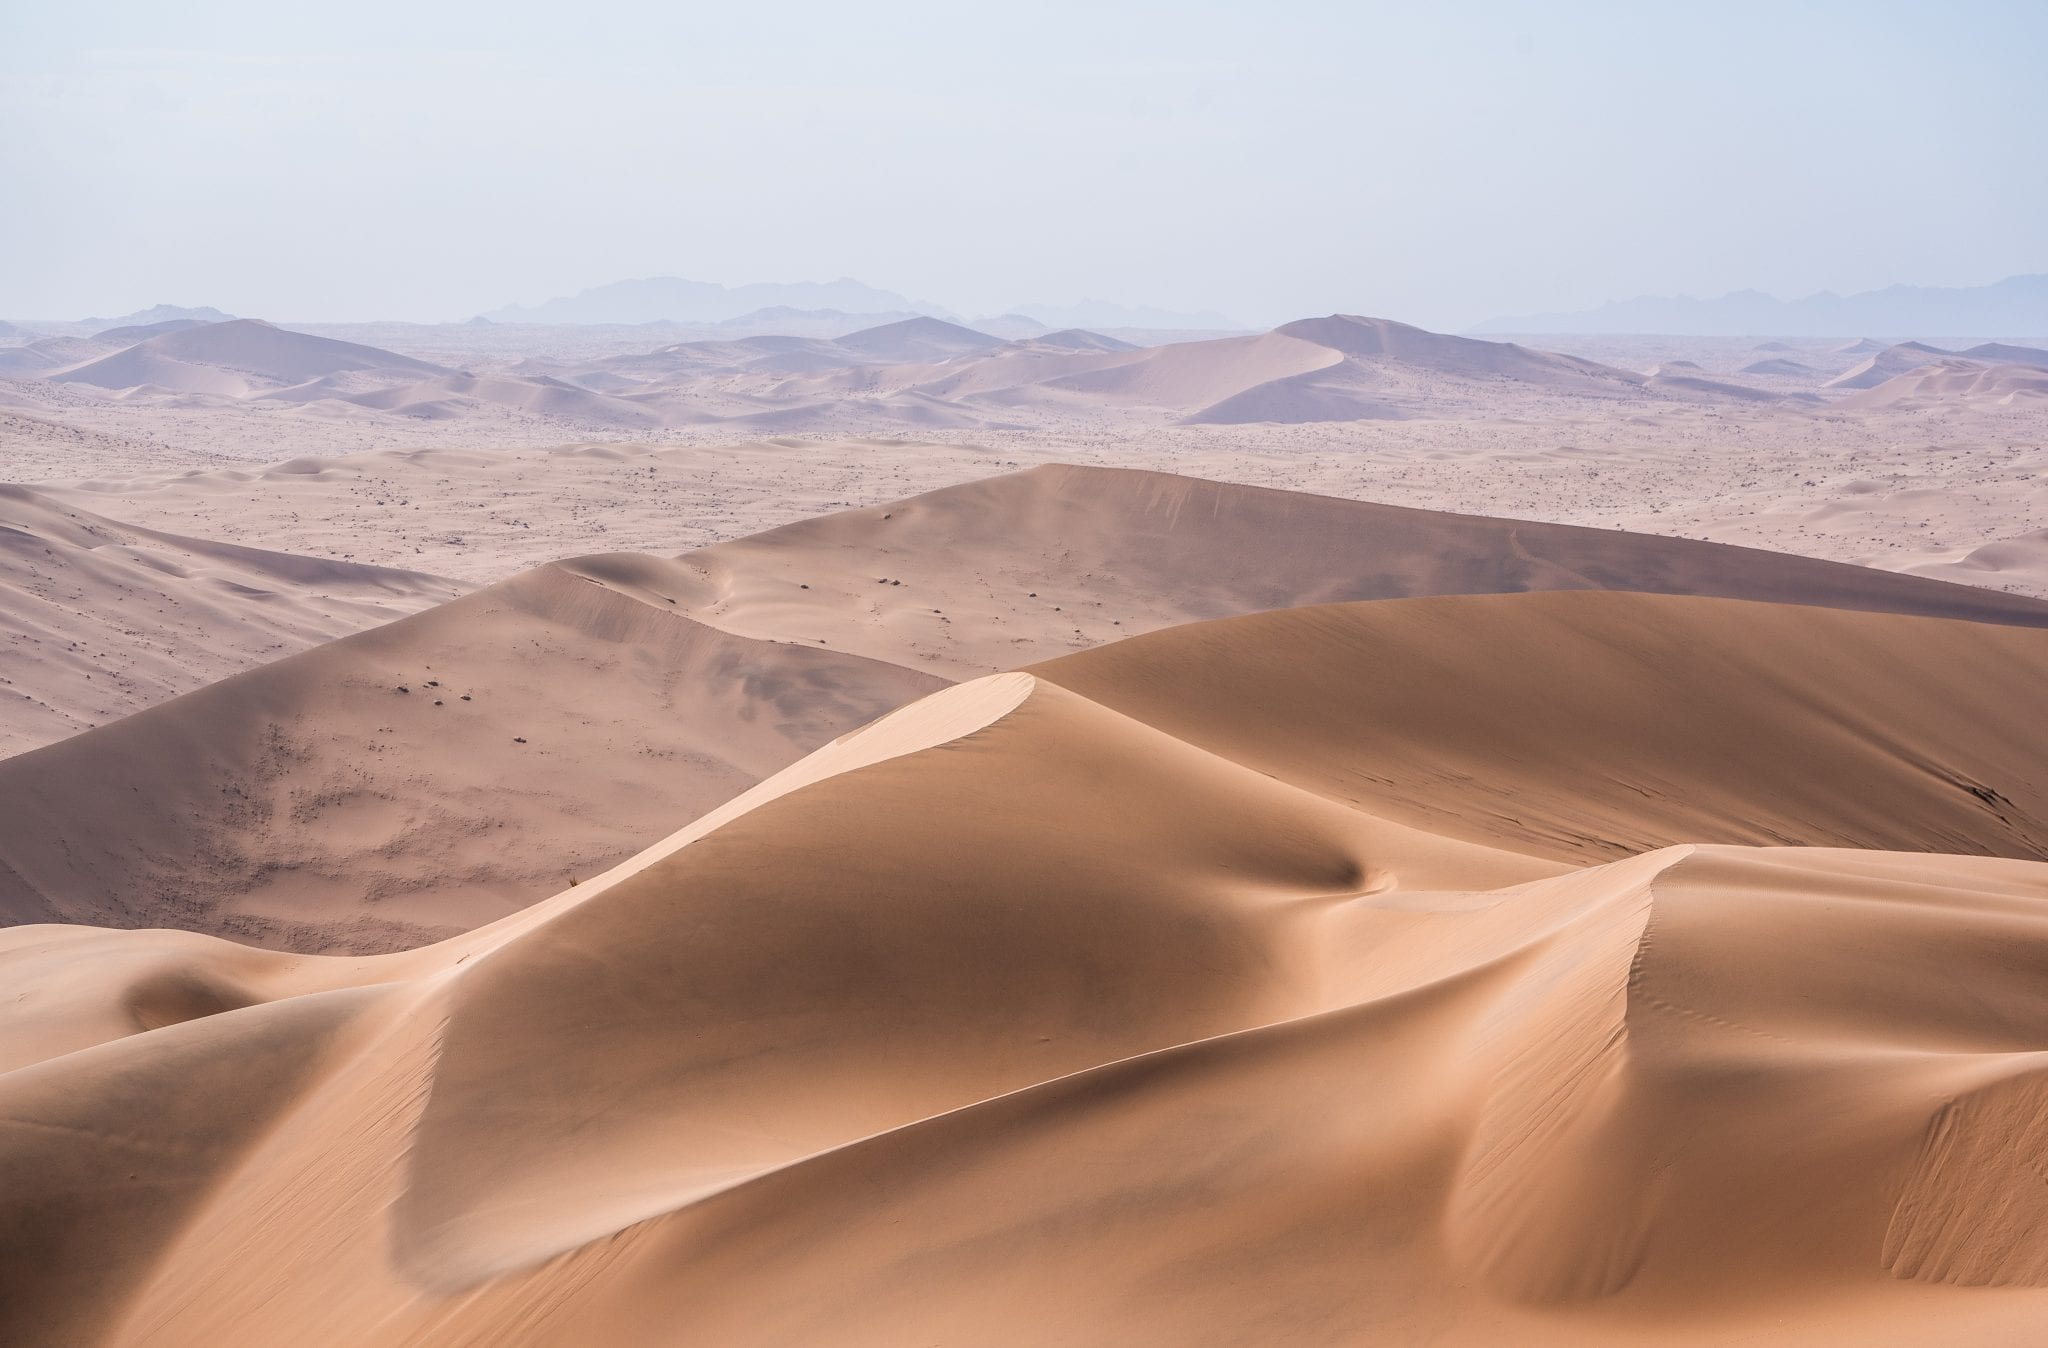 A dry, sandy desert that represents the feeling that a bed bug infestation would feel during heat treatment.